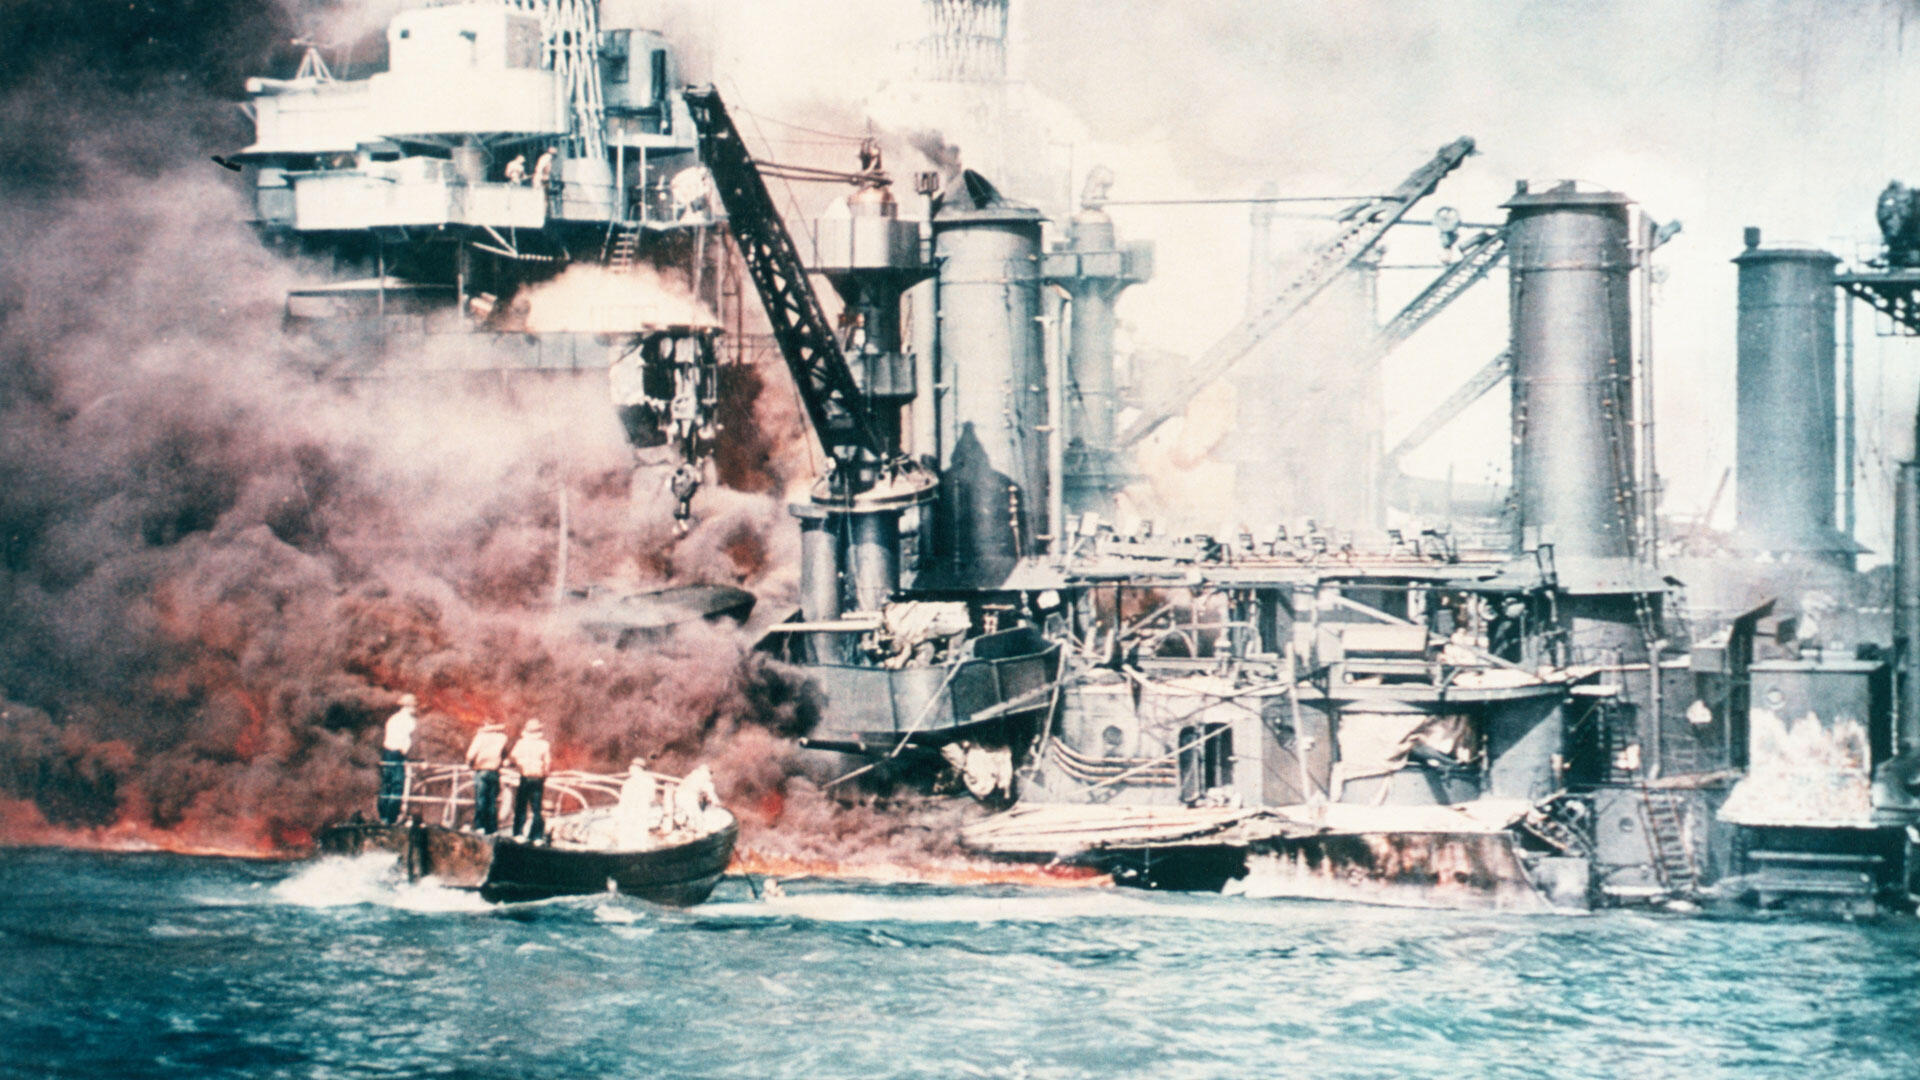 Pearl Harbor: Photos and Facts from the Infamous WWII Attack